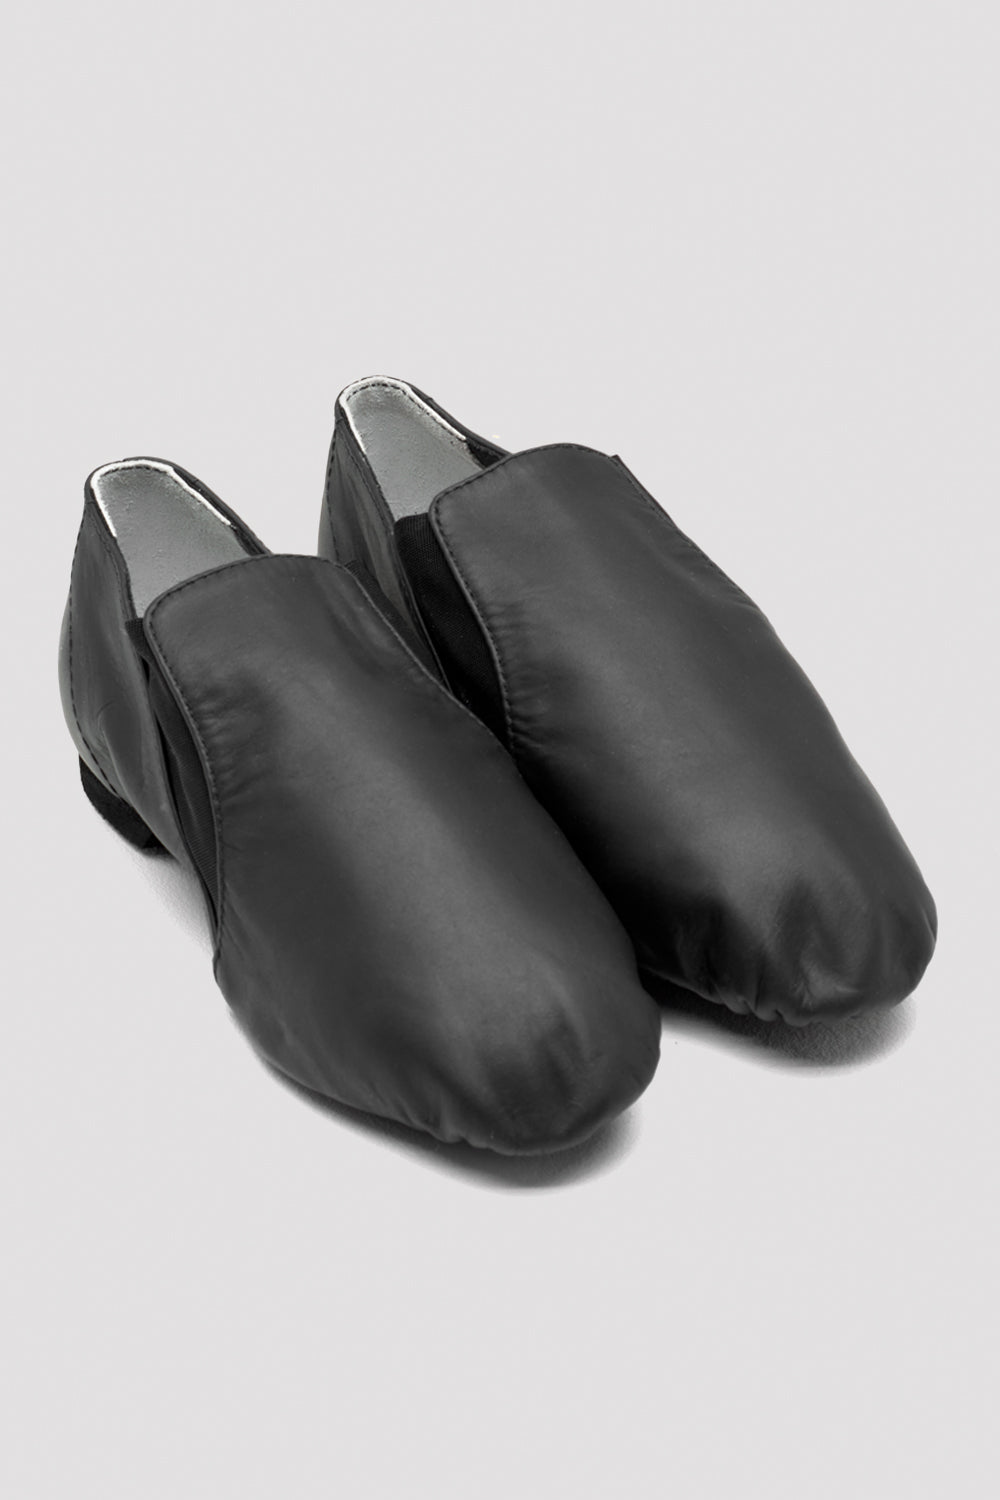 Ladies Leather Elasta Jazz Booties - BLOCH US